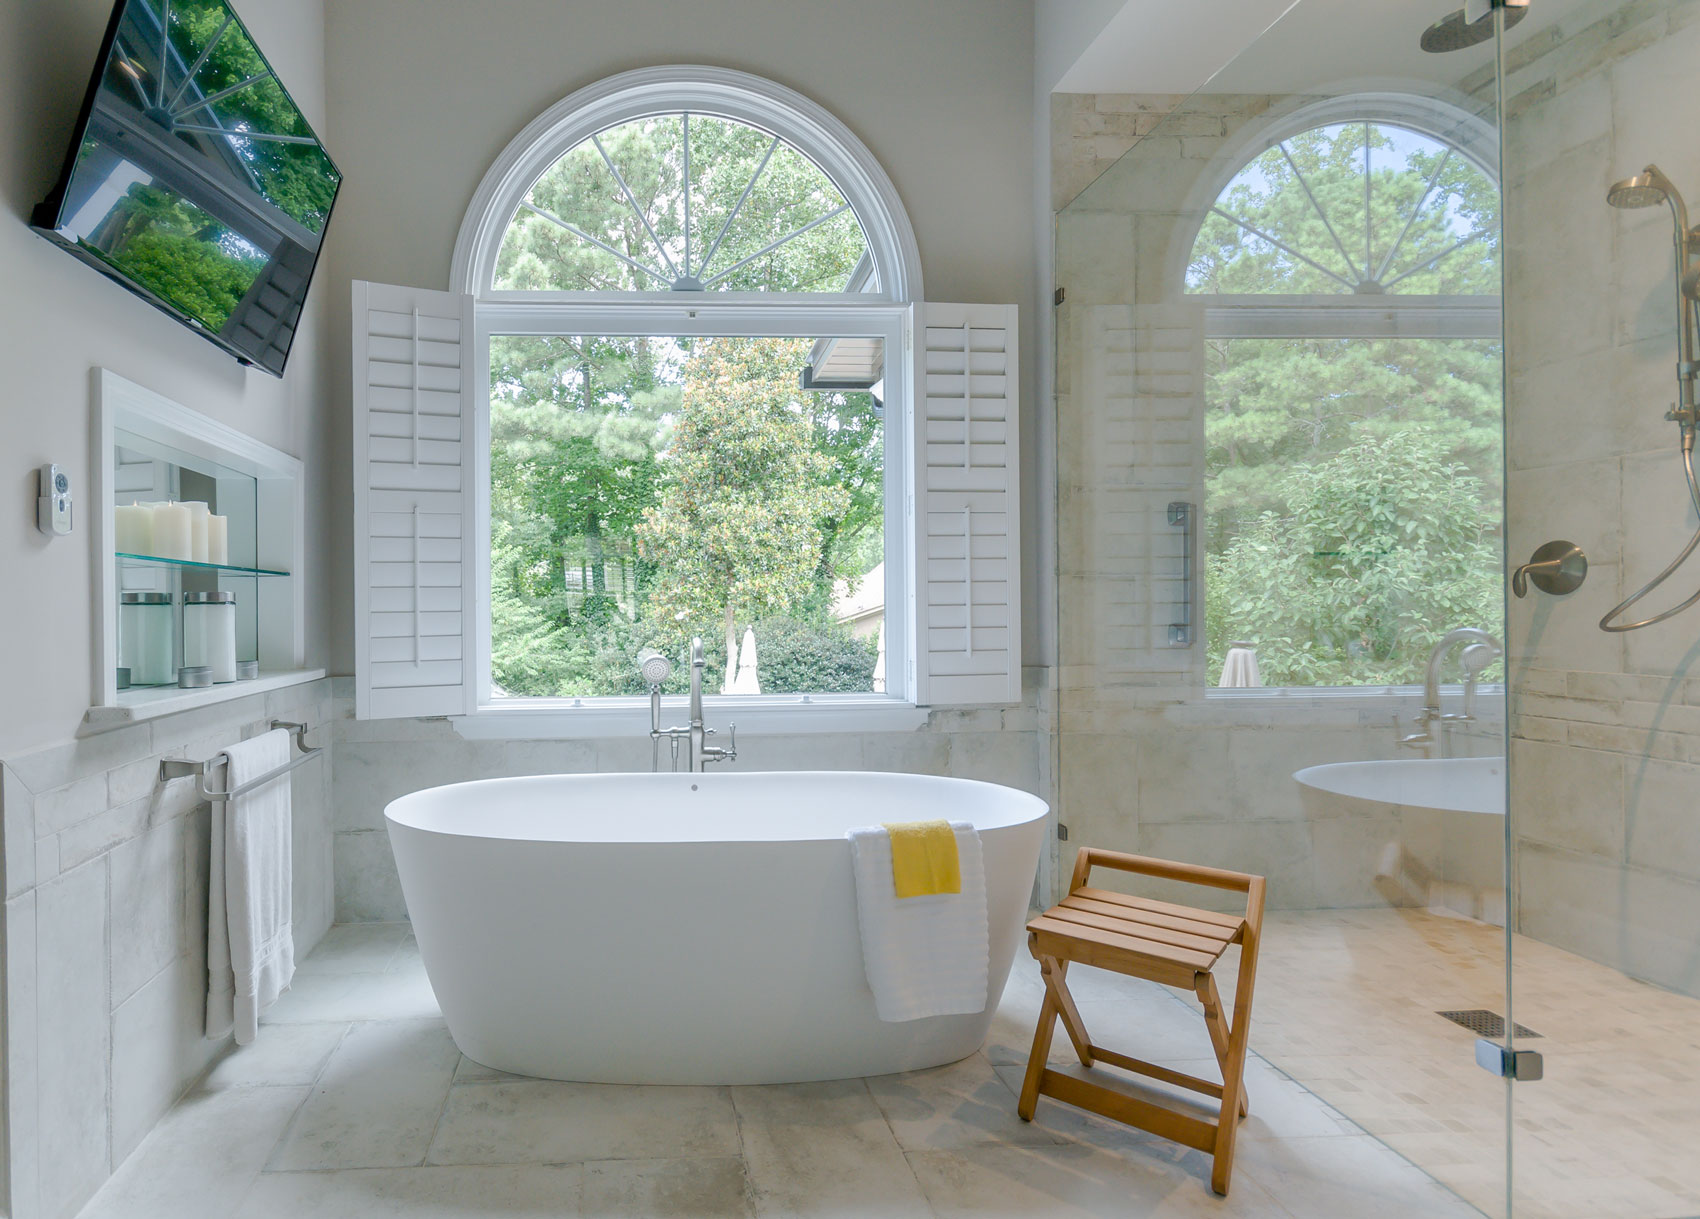 Luxious bath tub with marble tile